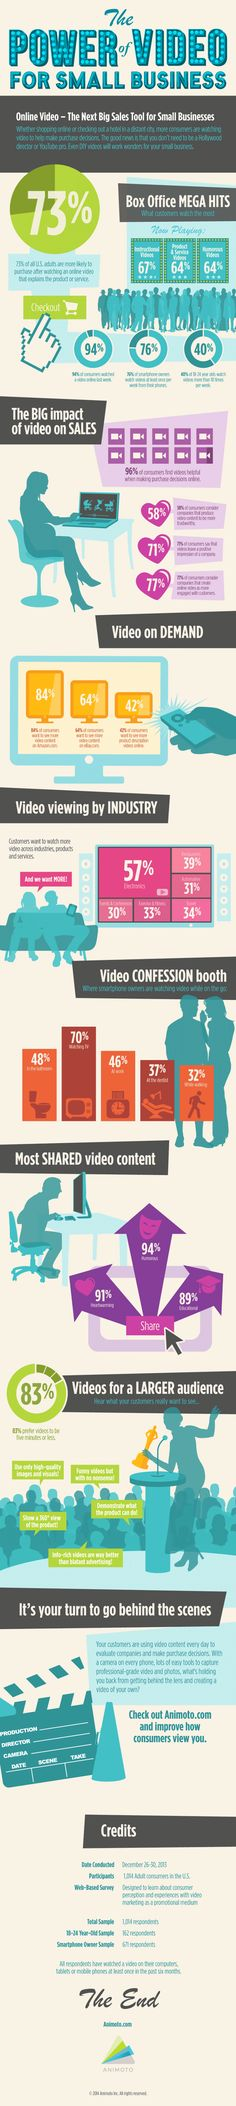 The Power of Using #Video in Small Business. #smallbiz #marketing